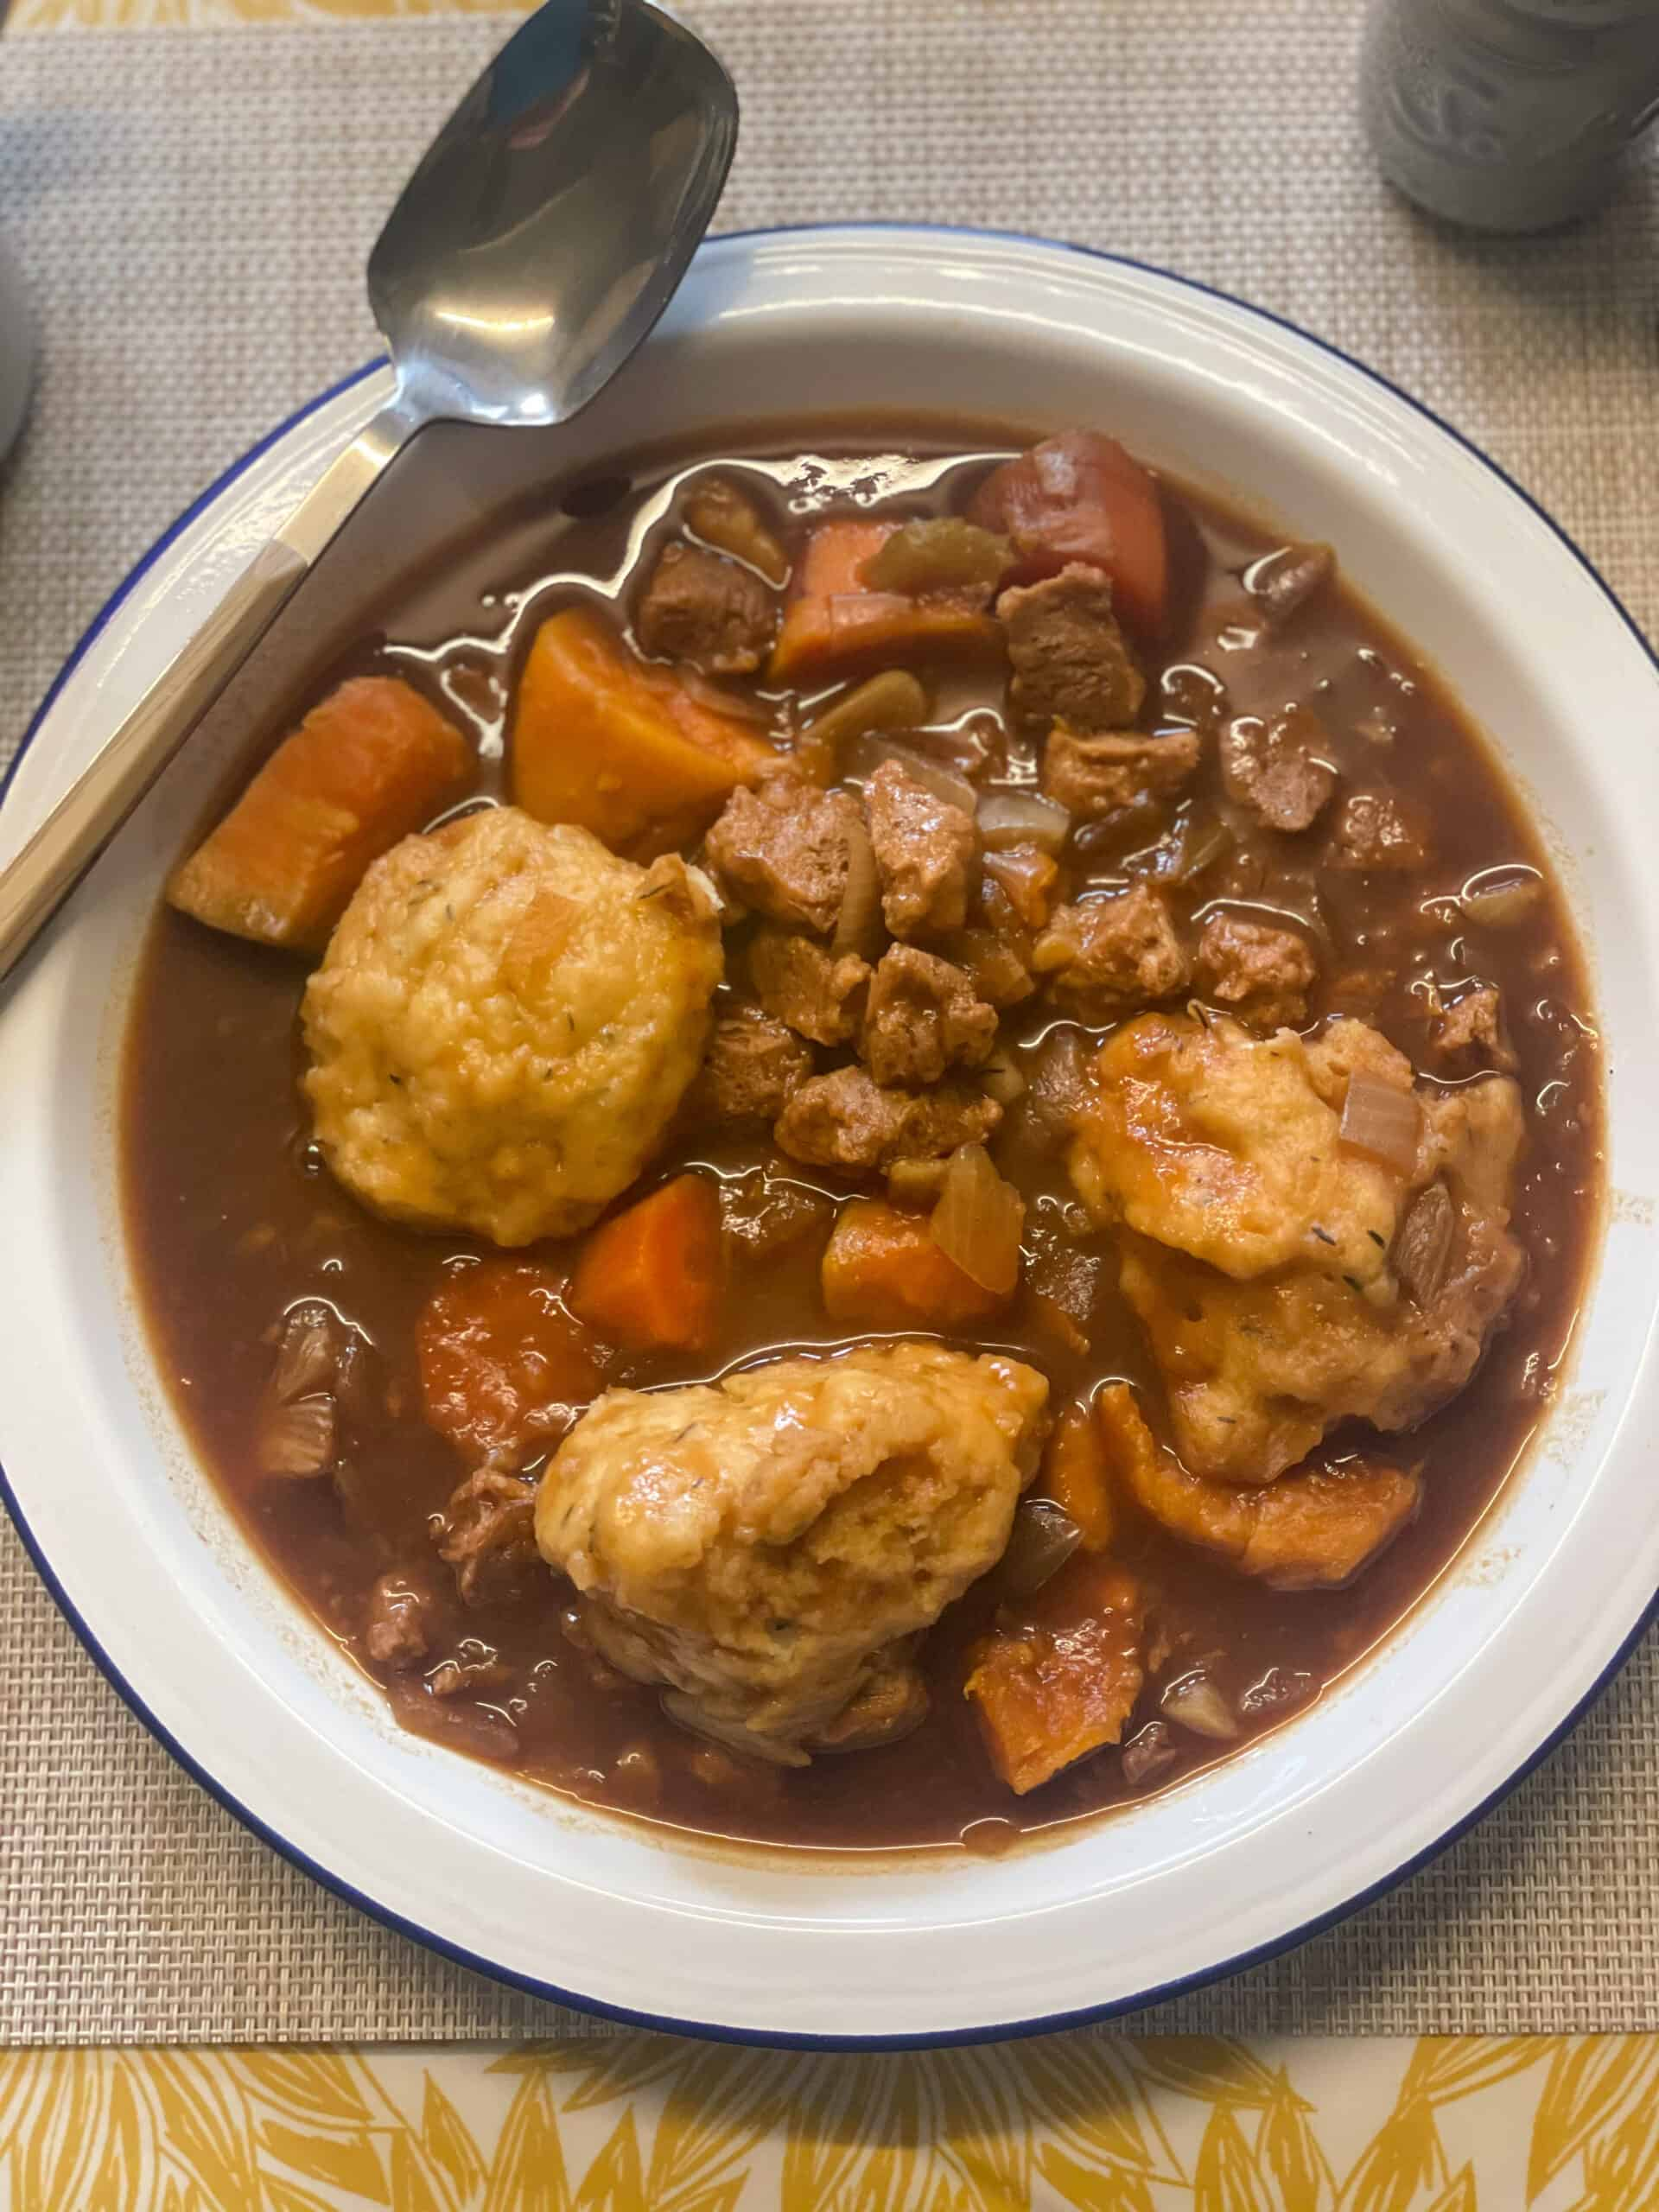 slow cooker vegan beef stew and dumplings ready to eat in white bowl with blue rim, spoon at side of plate